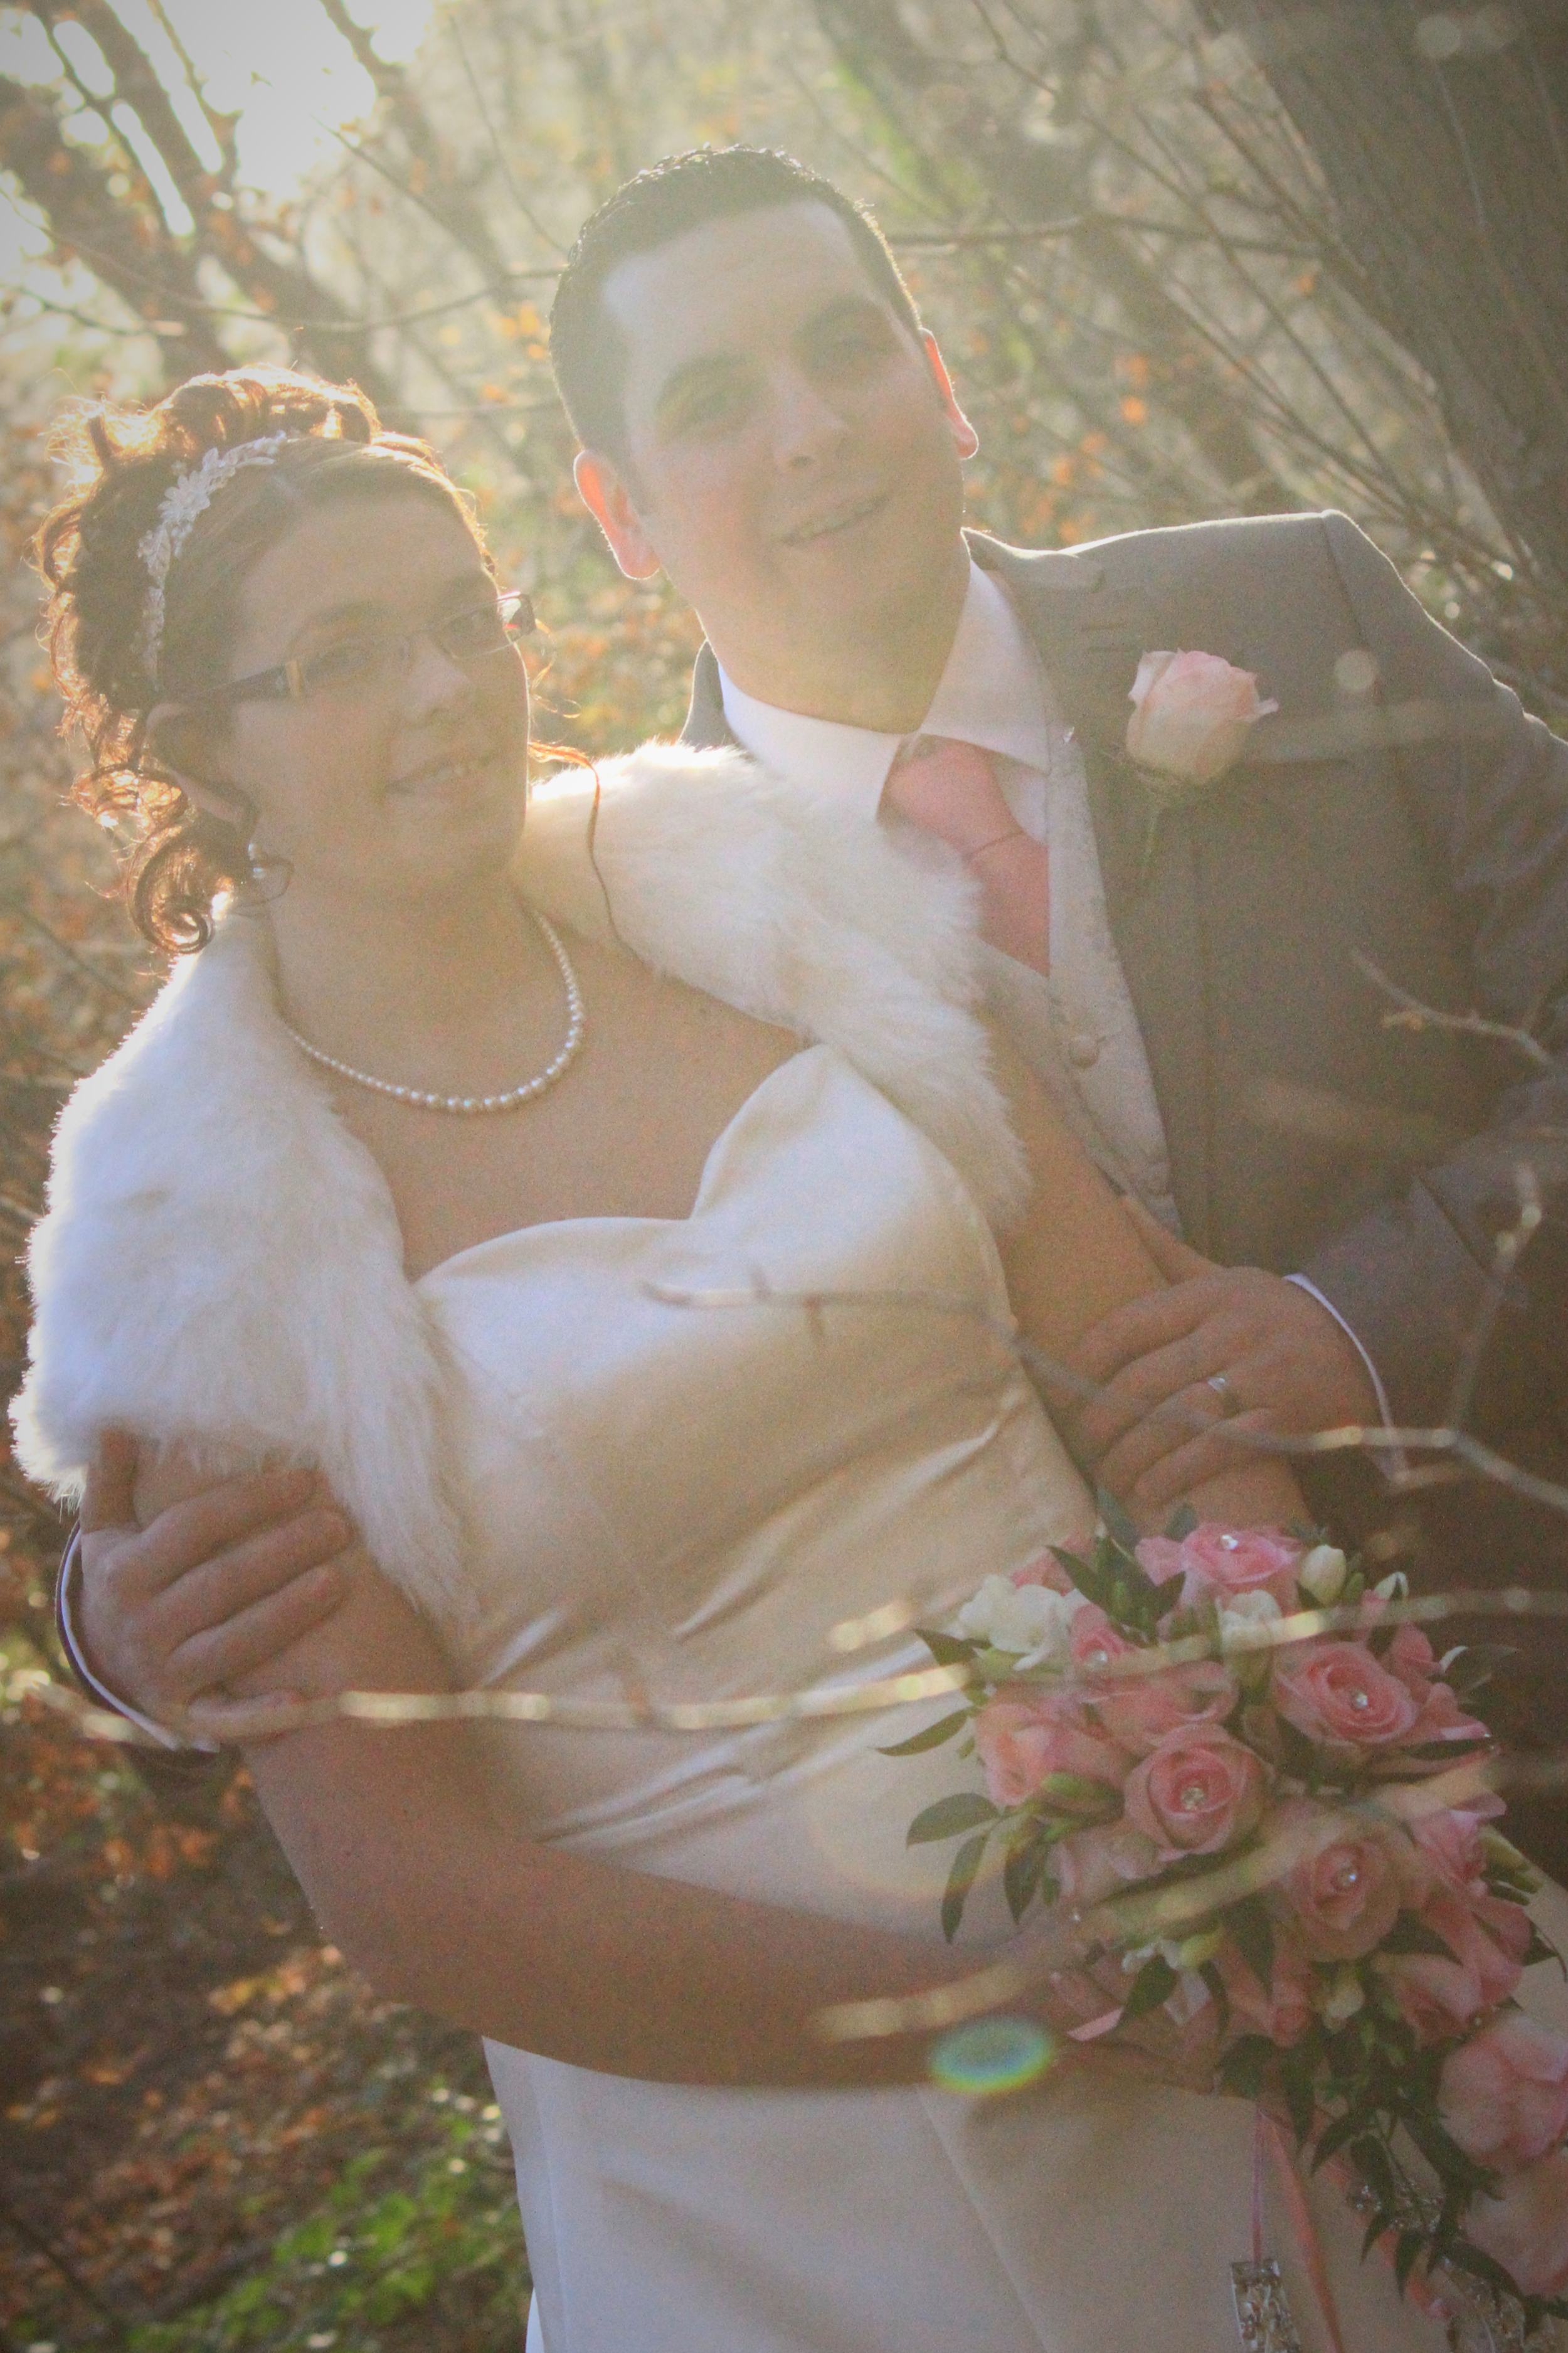 Castell Coch wedding photography covered by Cardiff wedding photographer Nathan Marshall.  cheap affordable wedding photographer Cardiff, Bridgend, Newport , Swansea , Gower